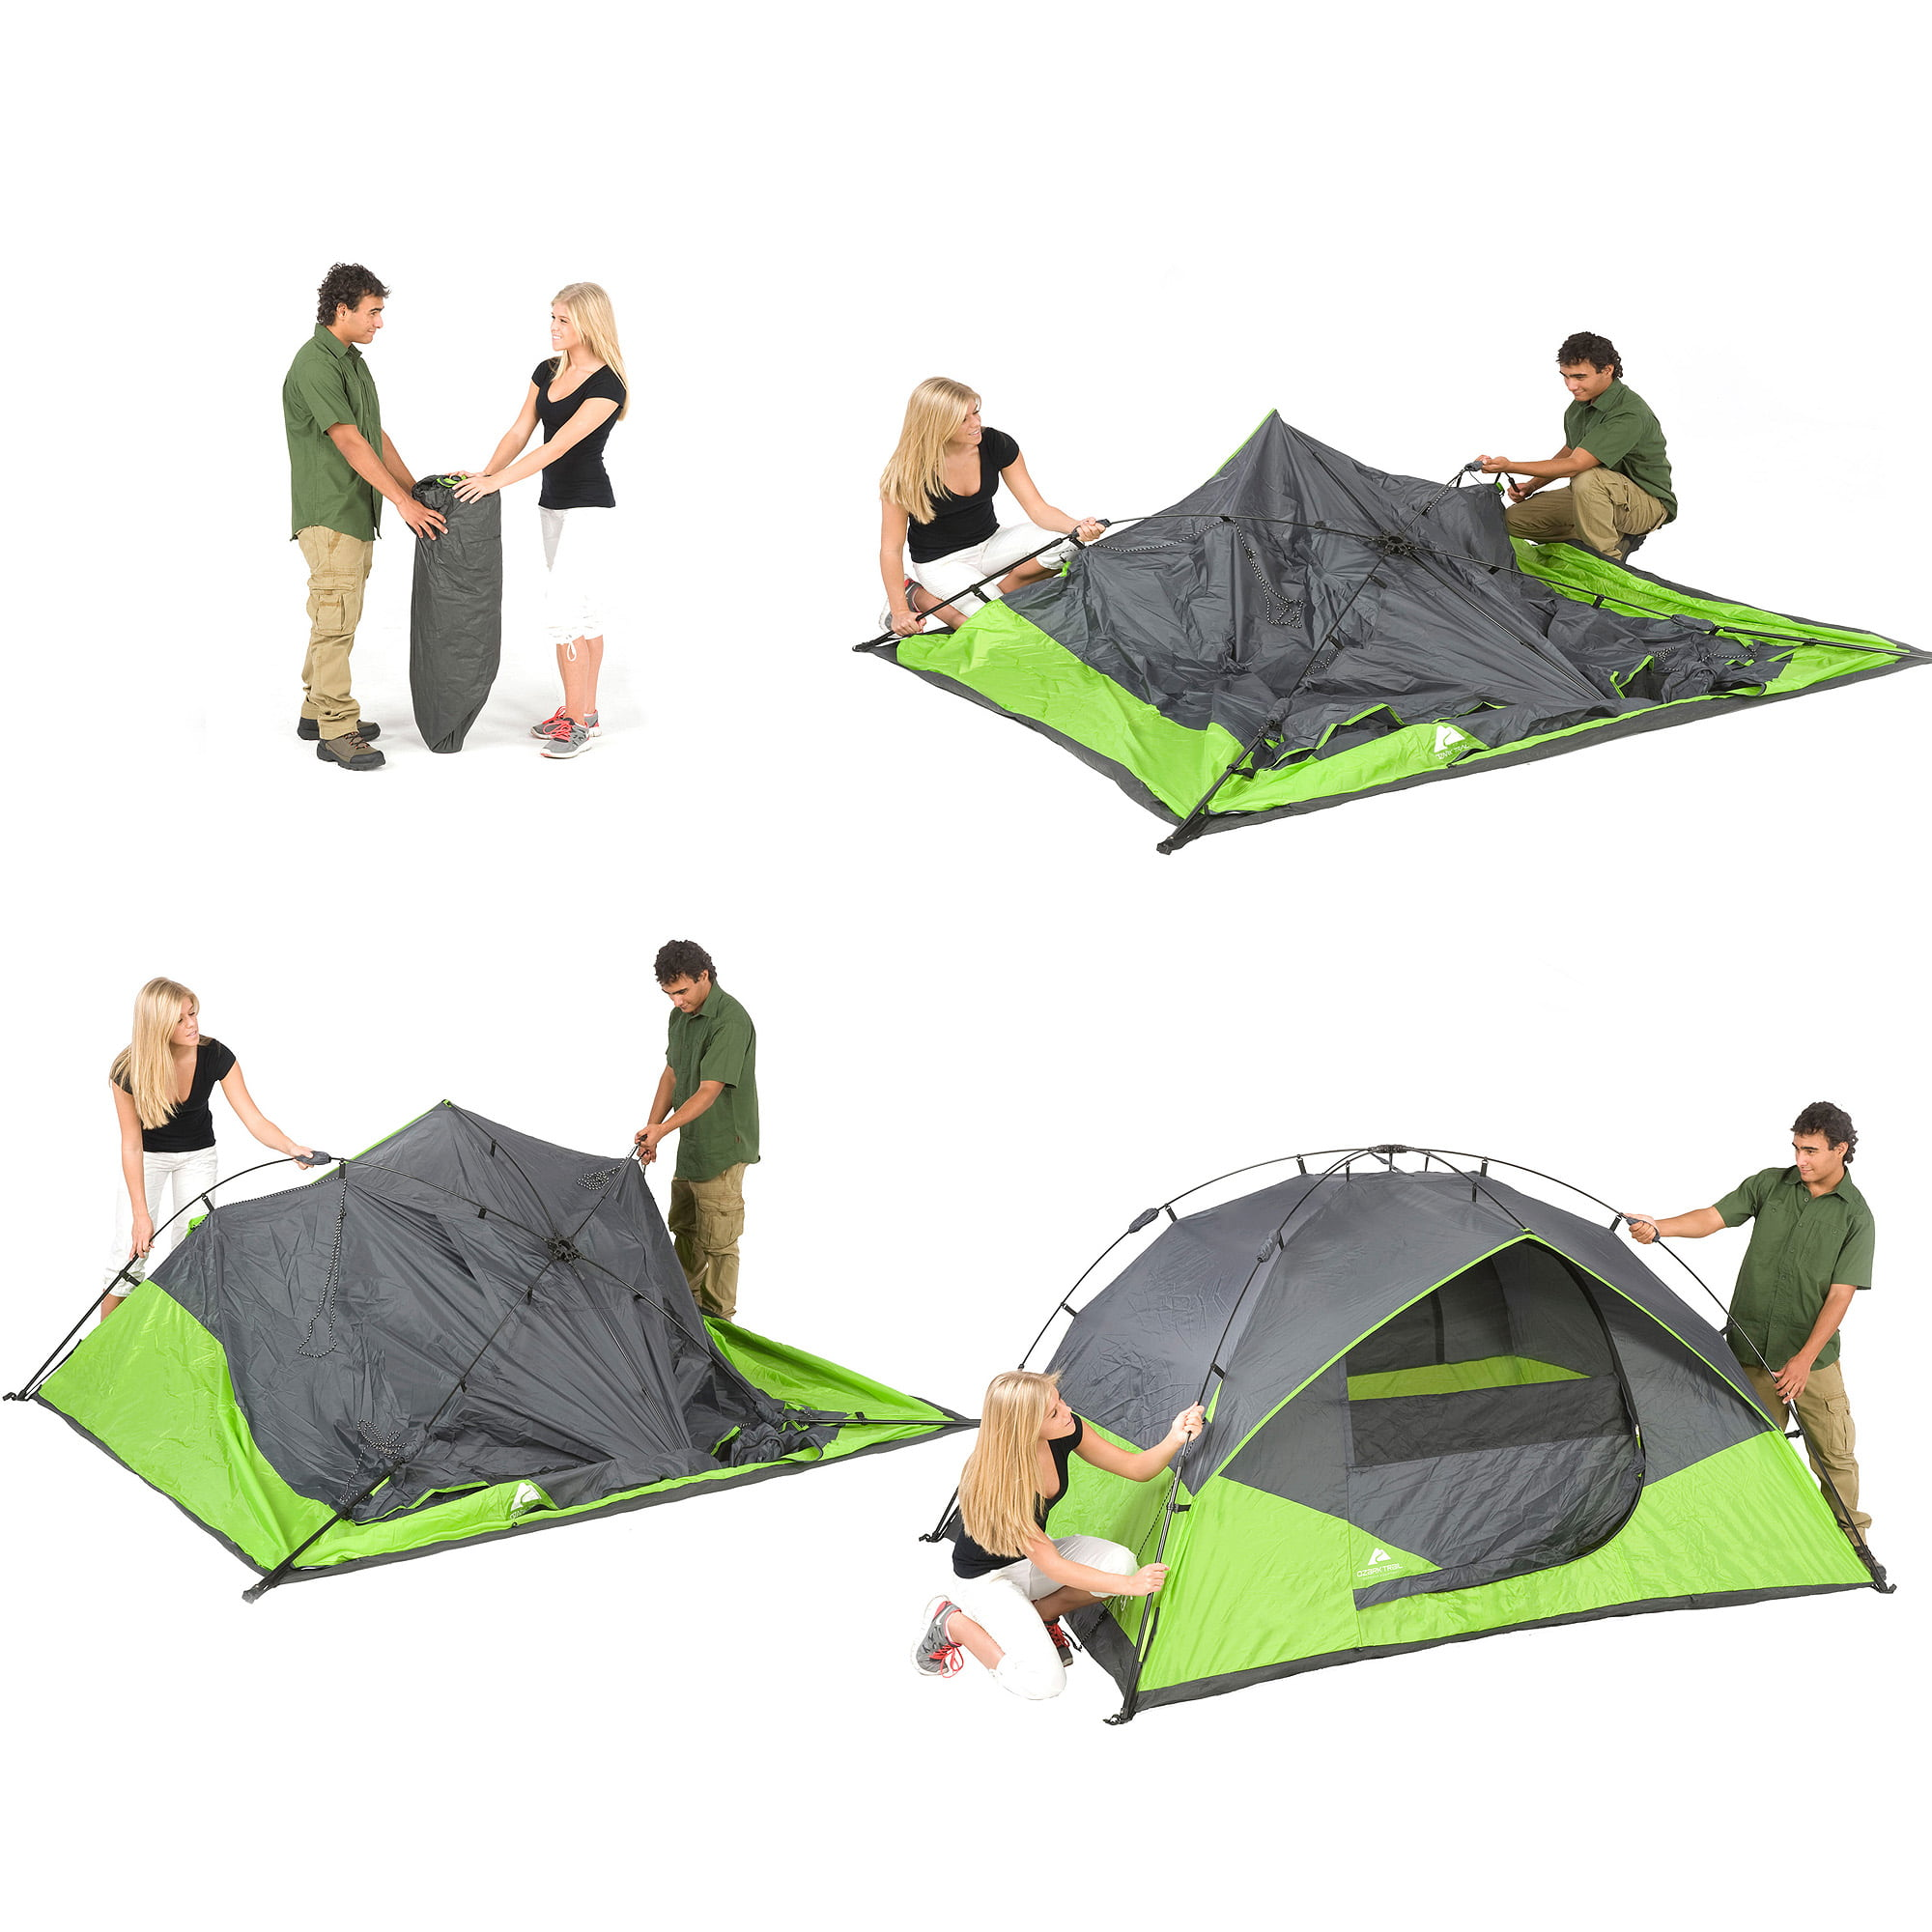 trail instant cabin com walmart cabins sleeps person tent ozark ip